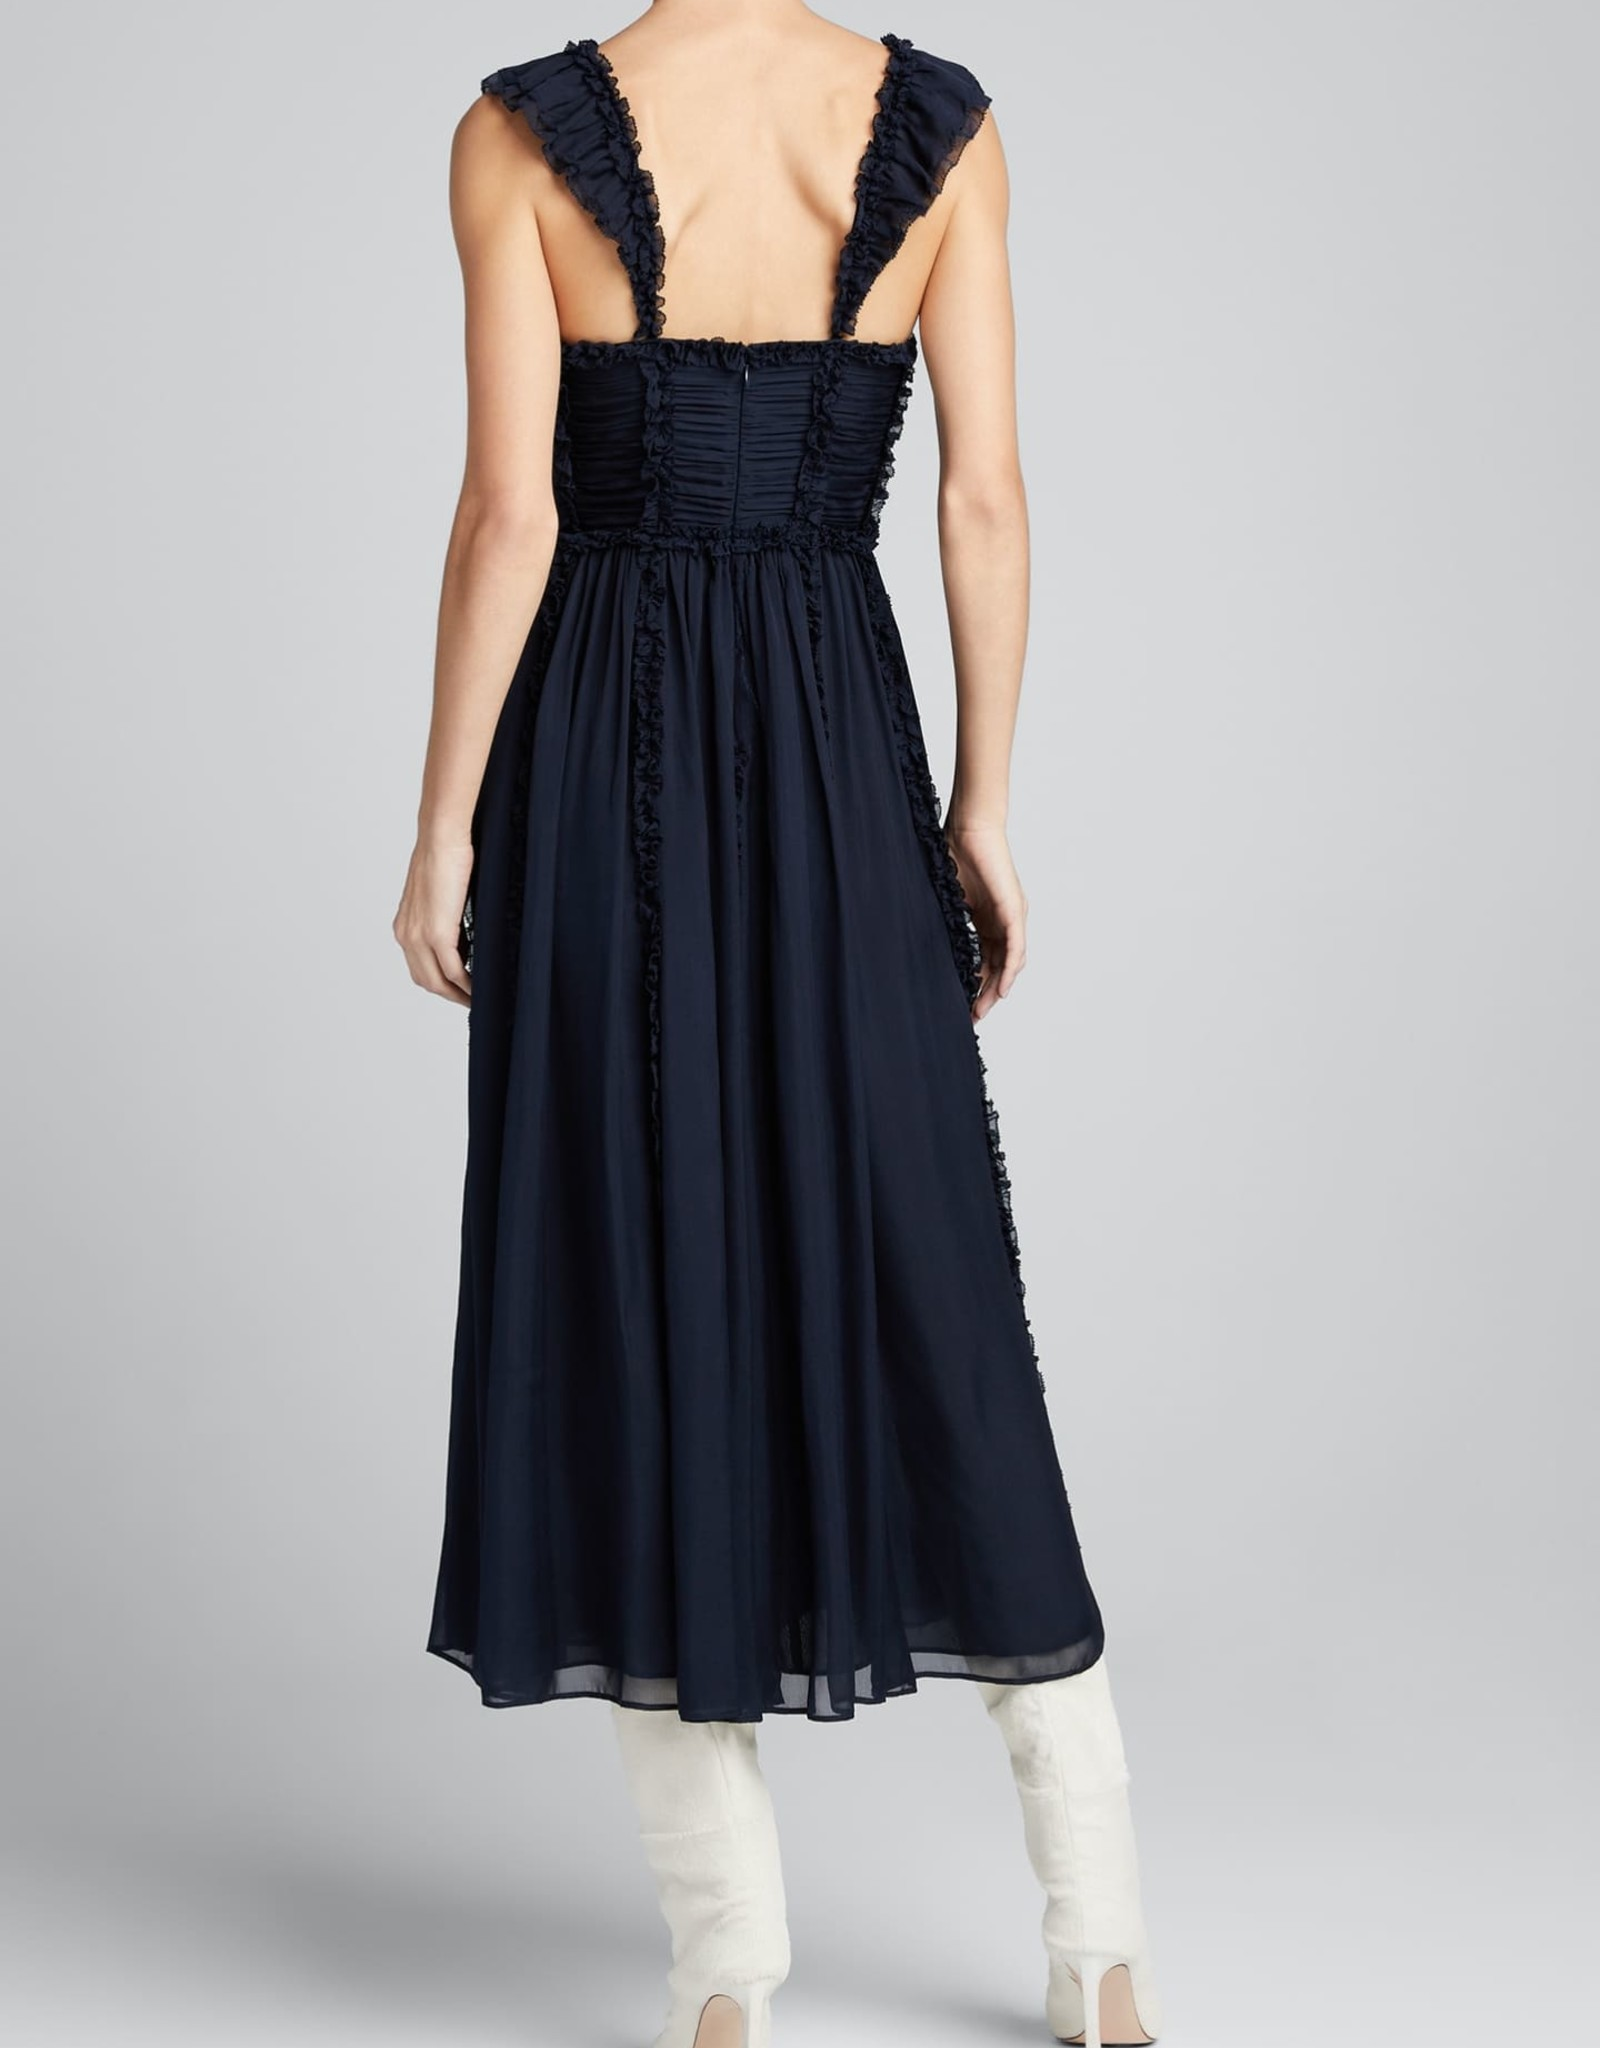 ULLA JOHNSON - Florence Dress